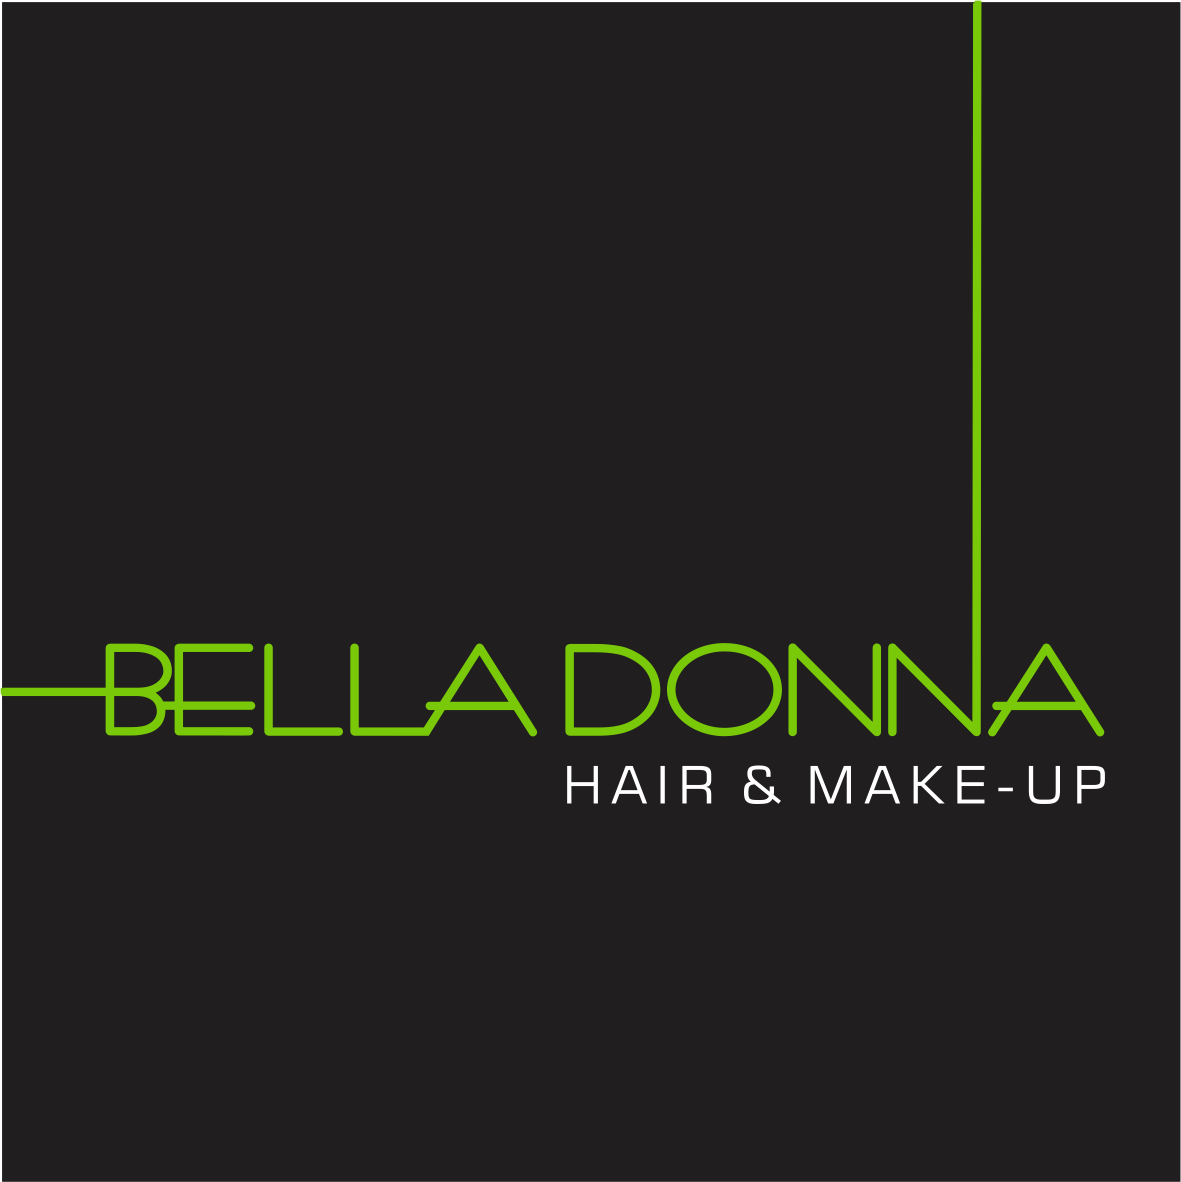 Belladonna Hair and Make-up